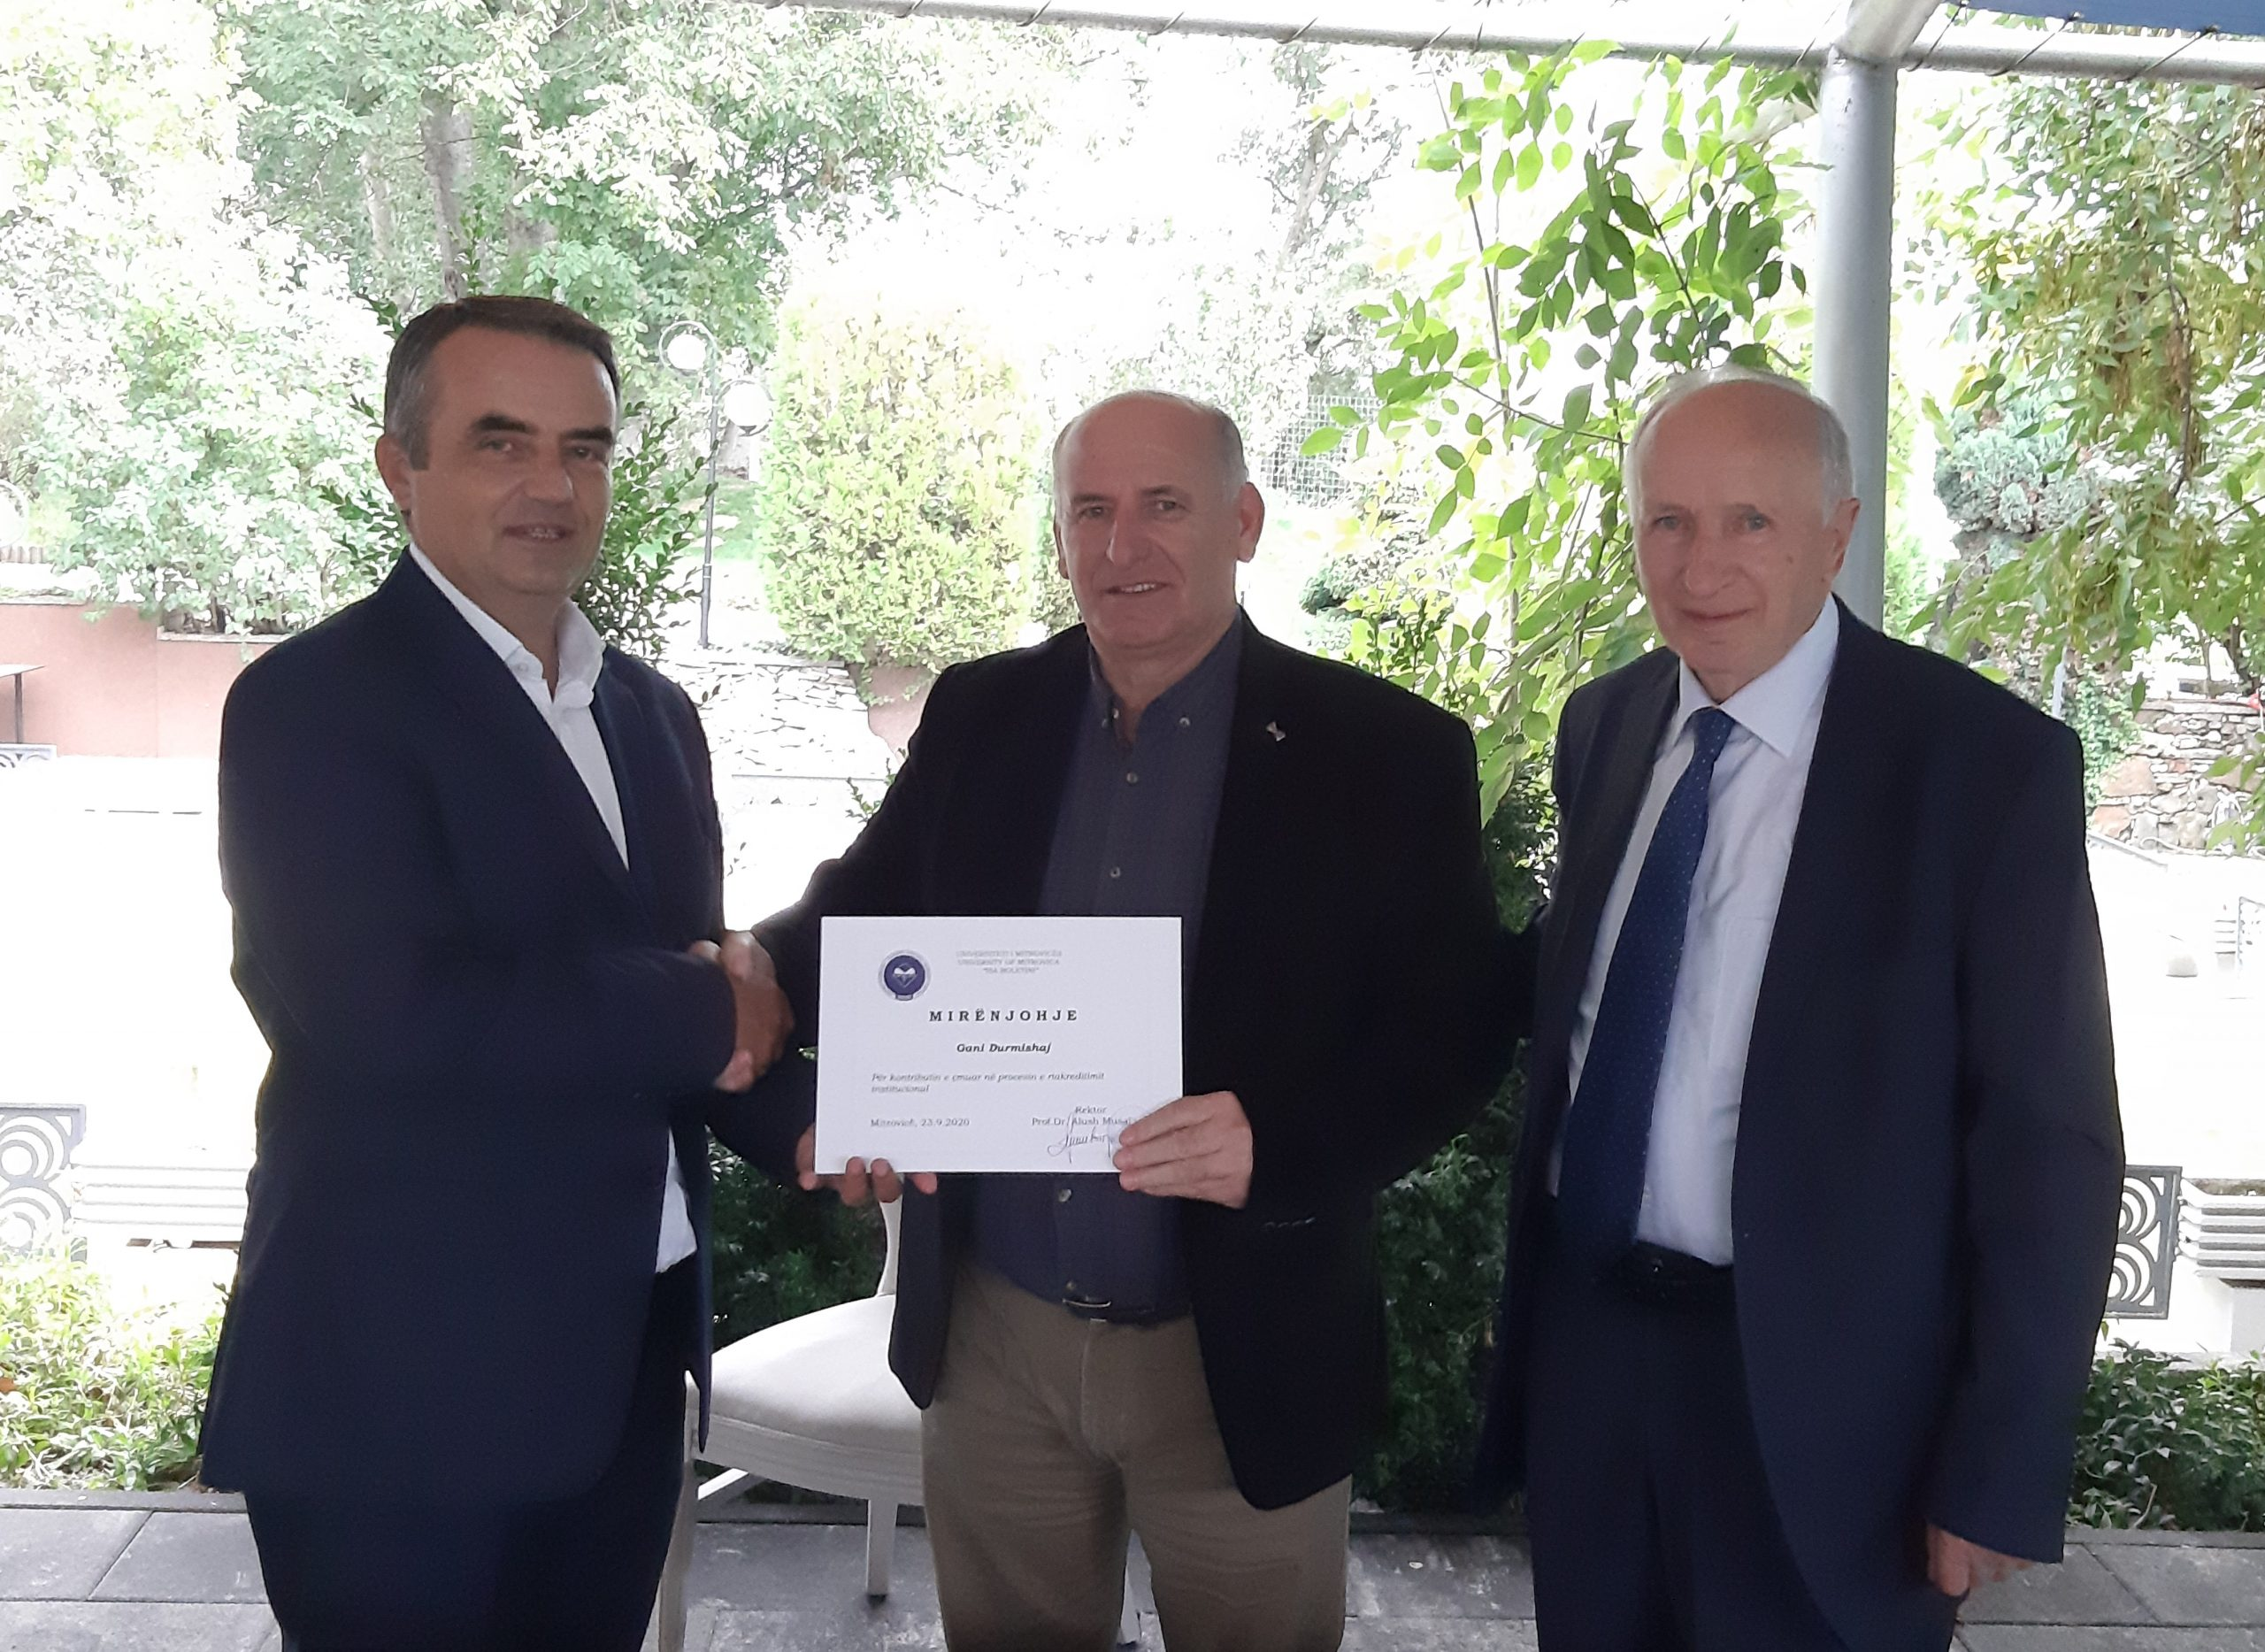 Acknowledgment for contribution to the UMIB re-accreditation process